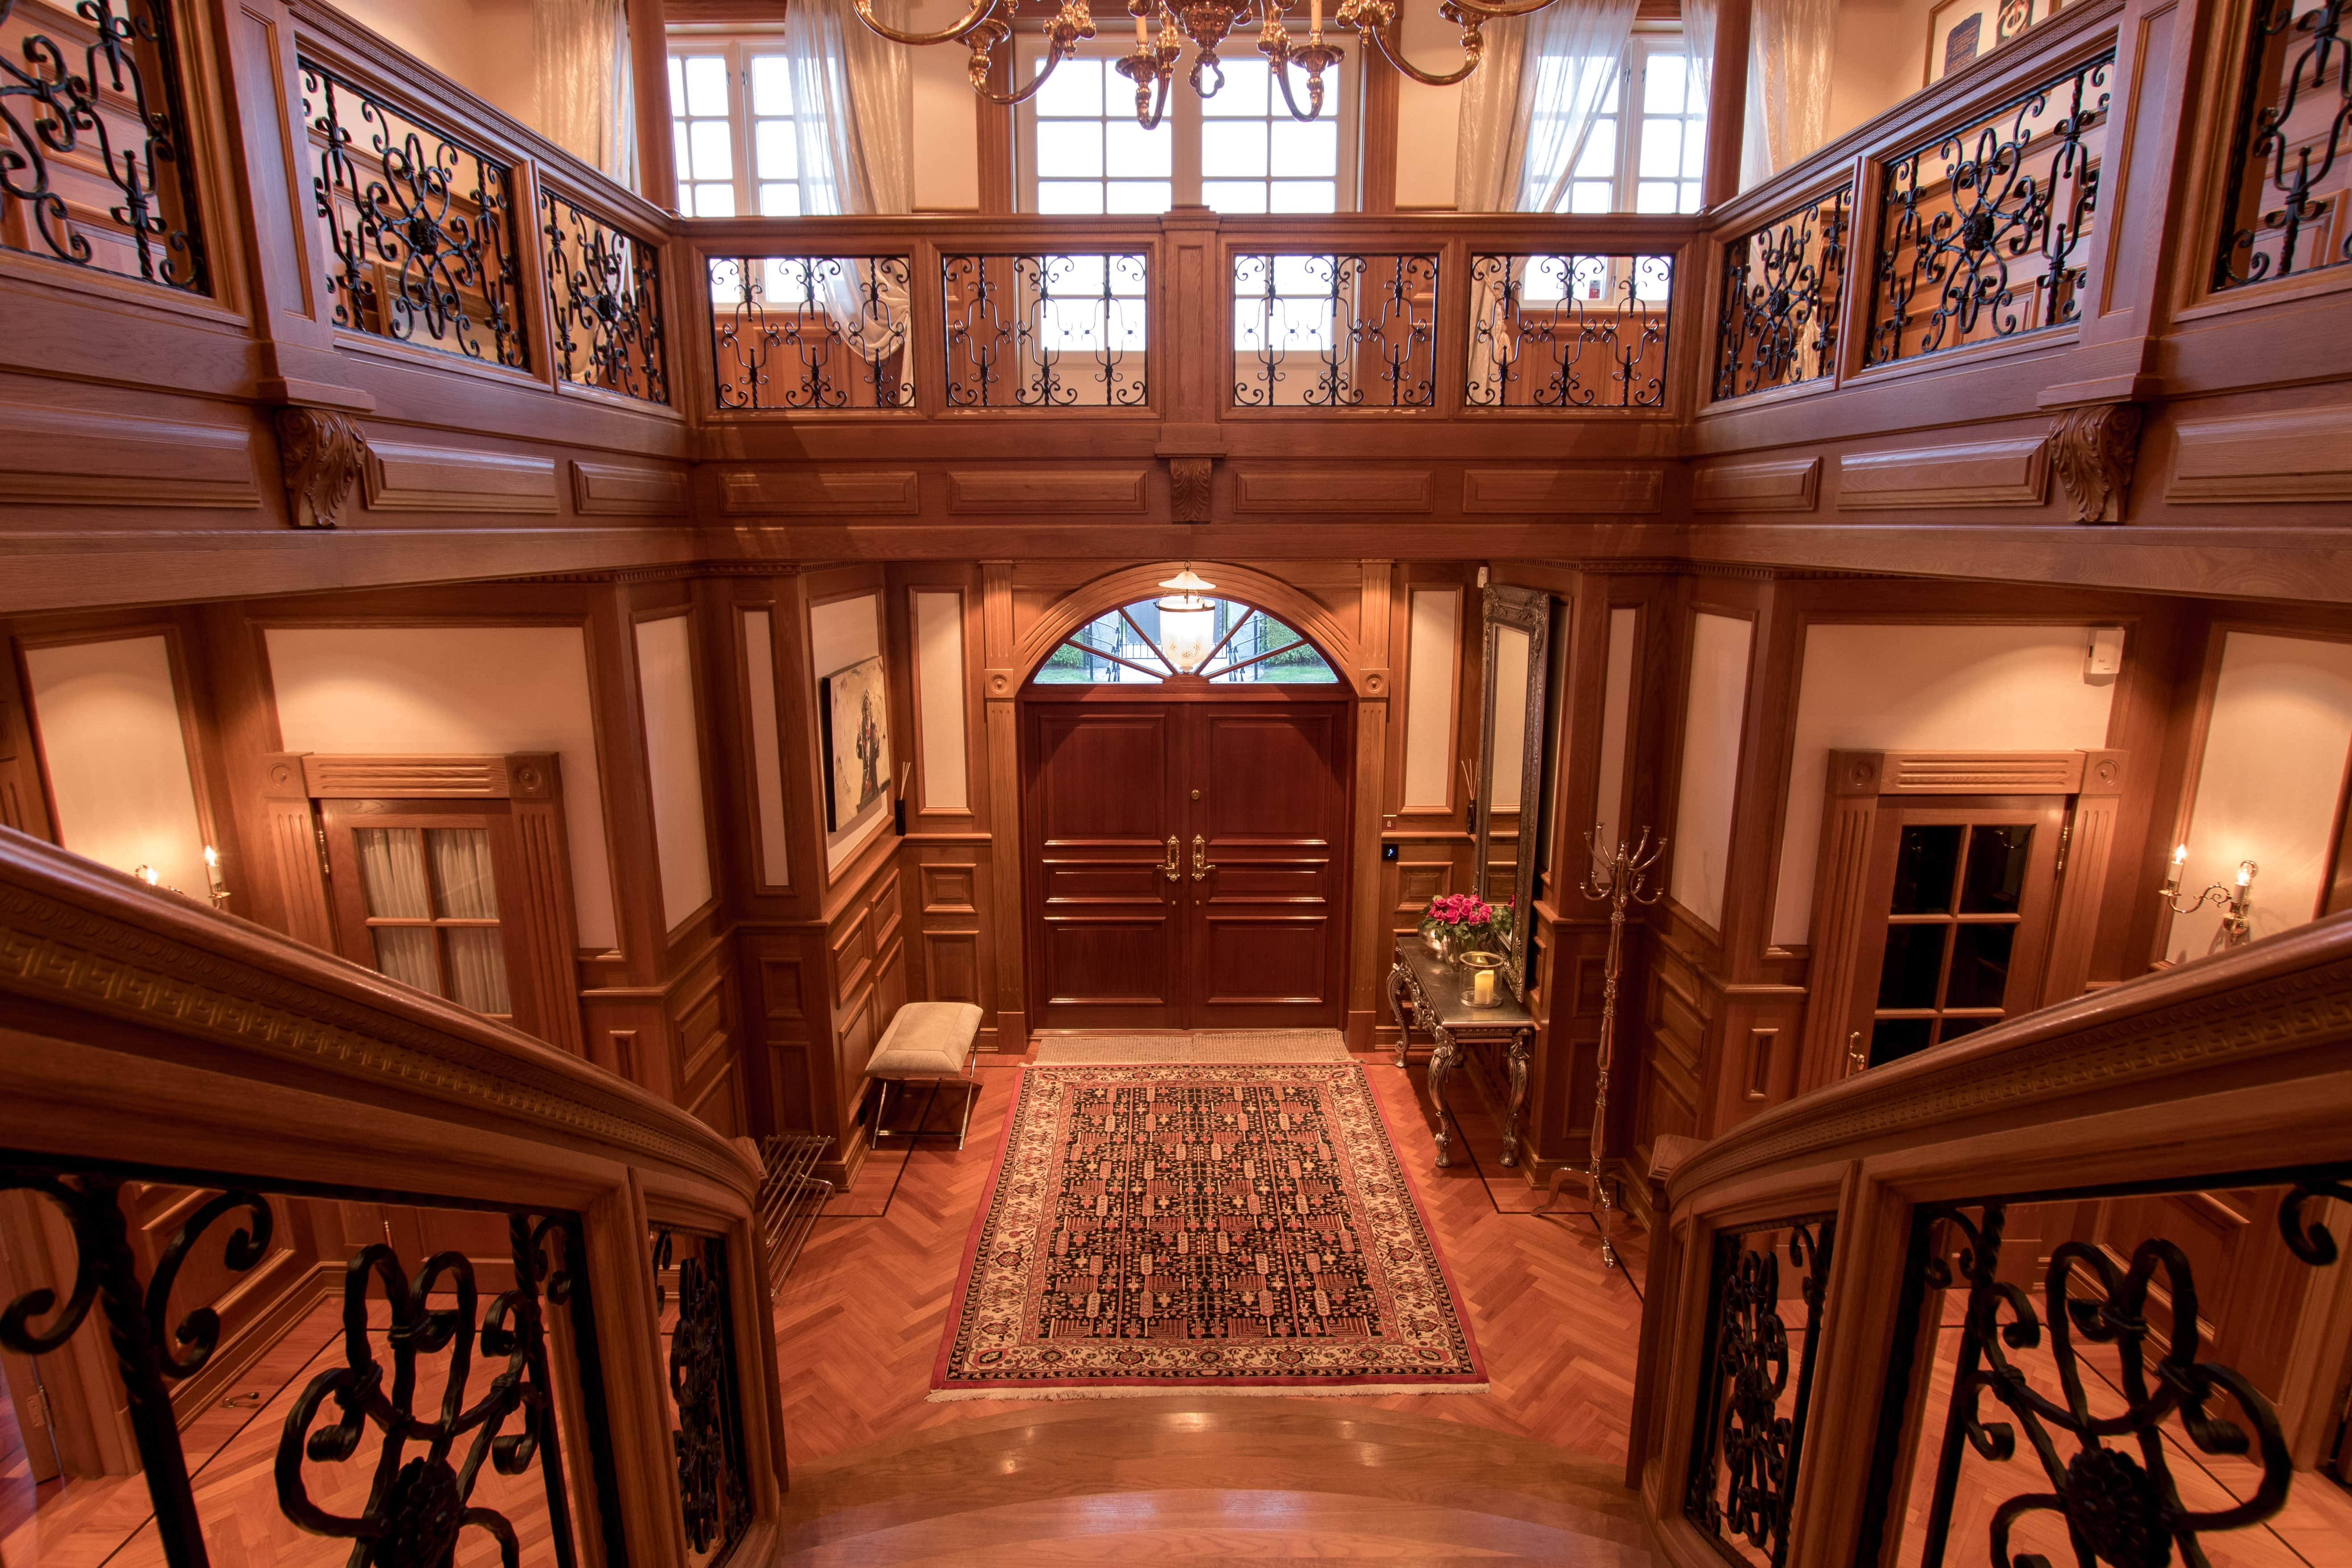 Step inside the main door and behold the sight of a one of a kind mansion.